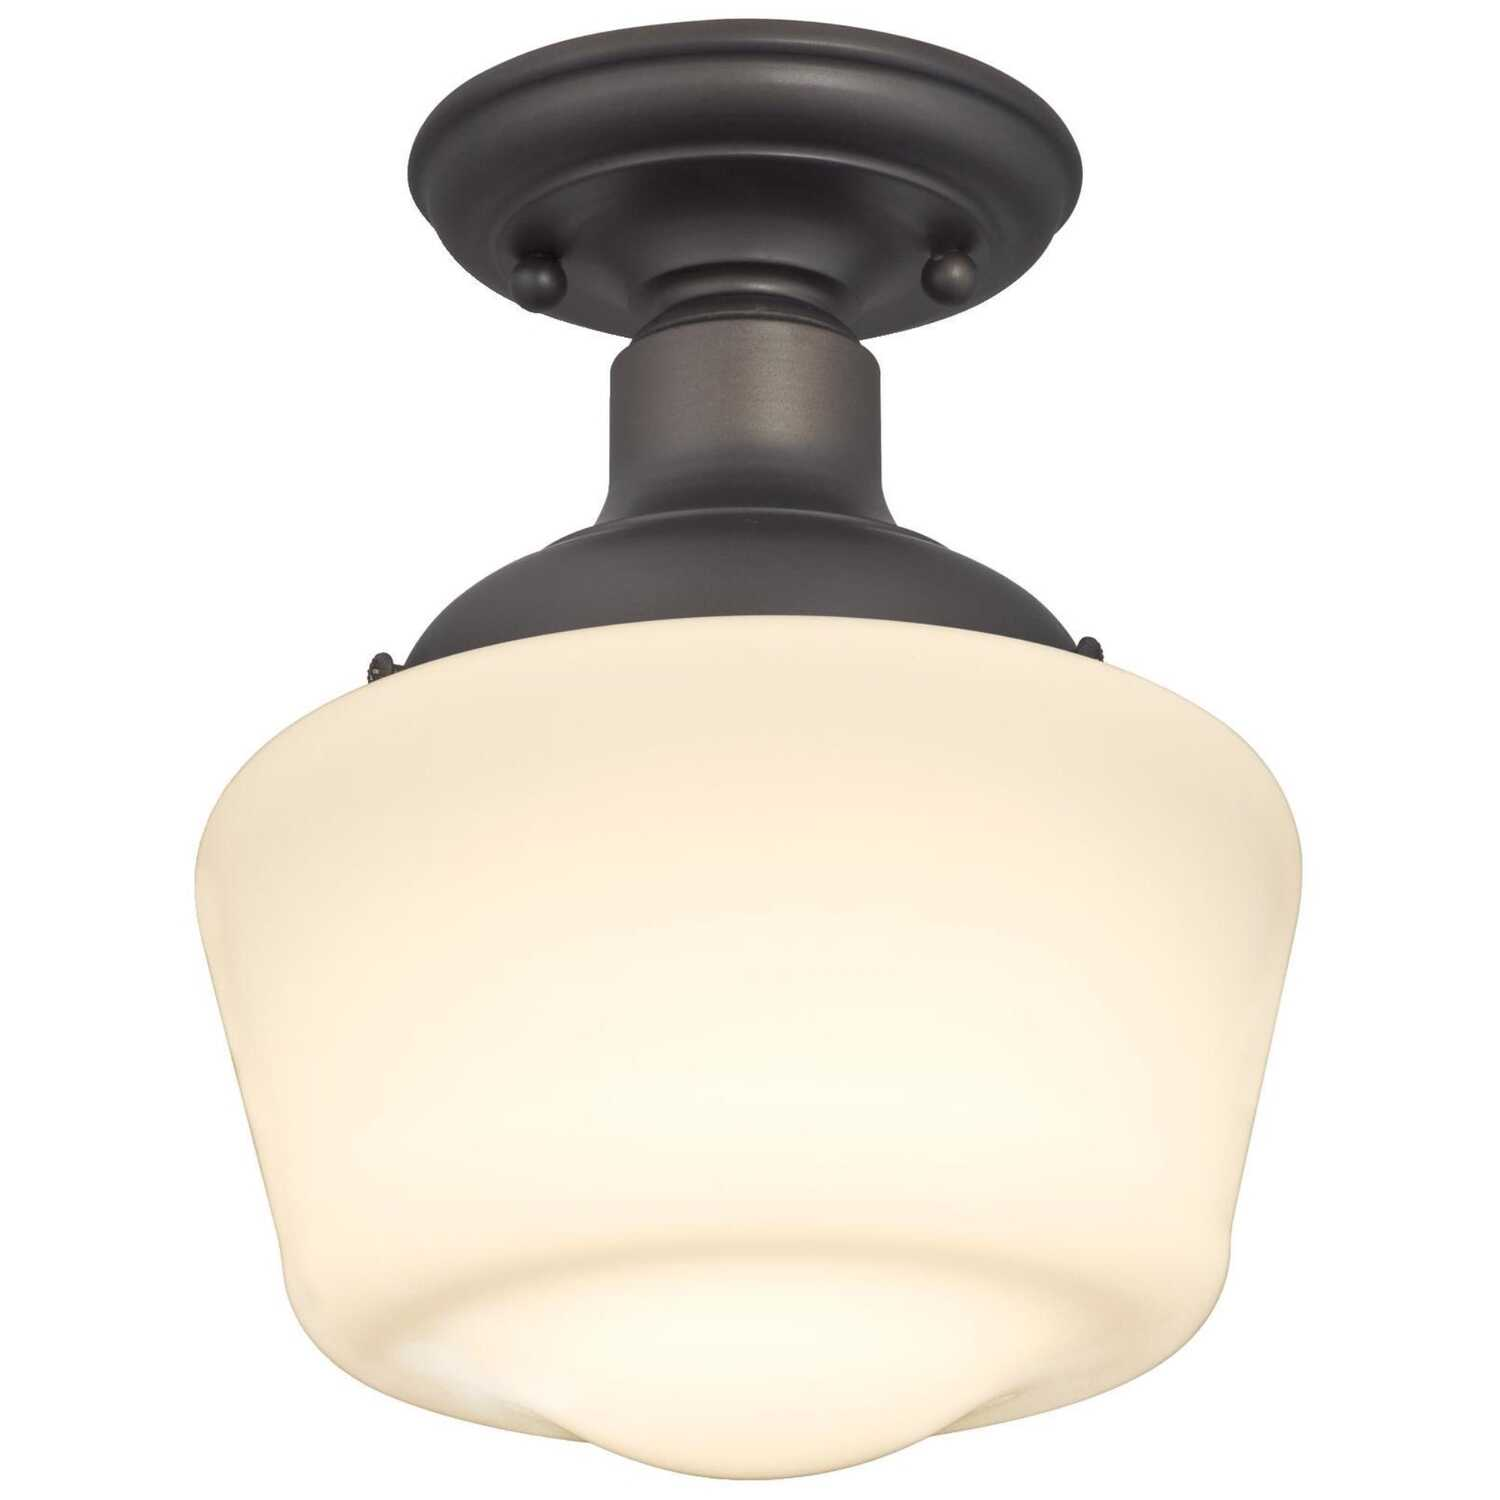 Westinghouse  Scholar  11.42 in. H x 8.86 in. W x 8.86 in. L Ceiling Light